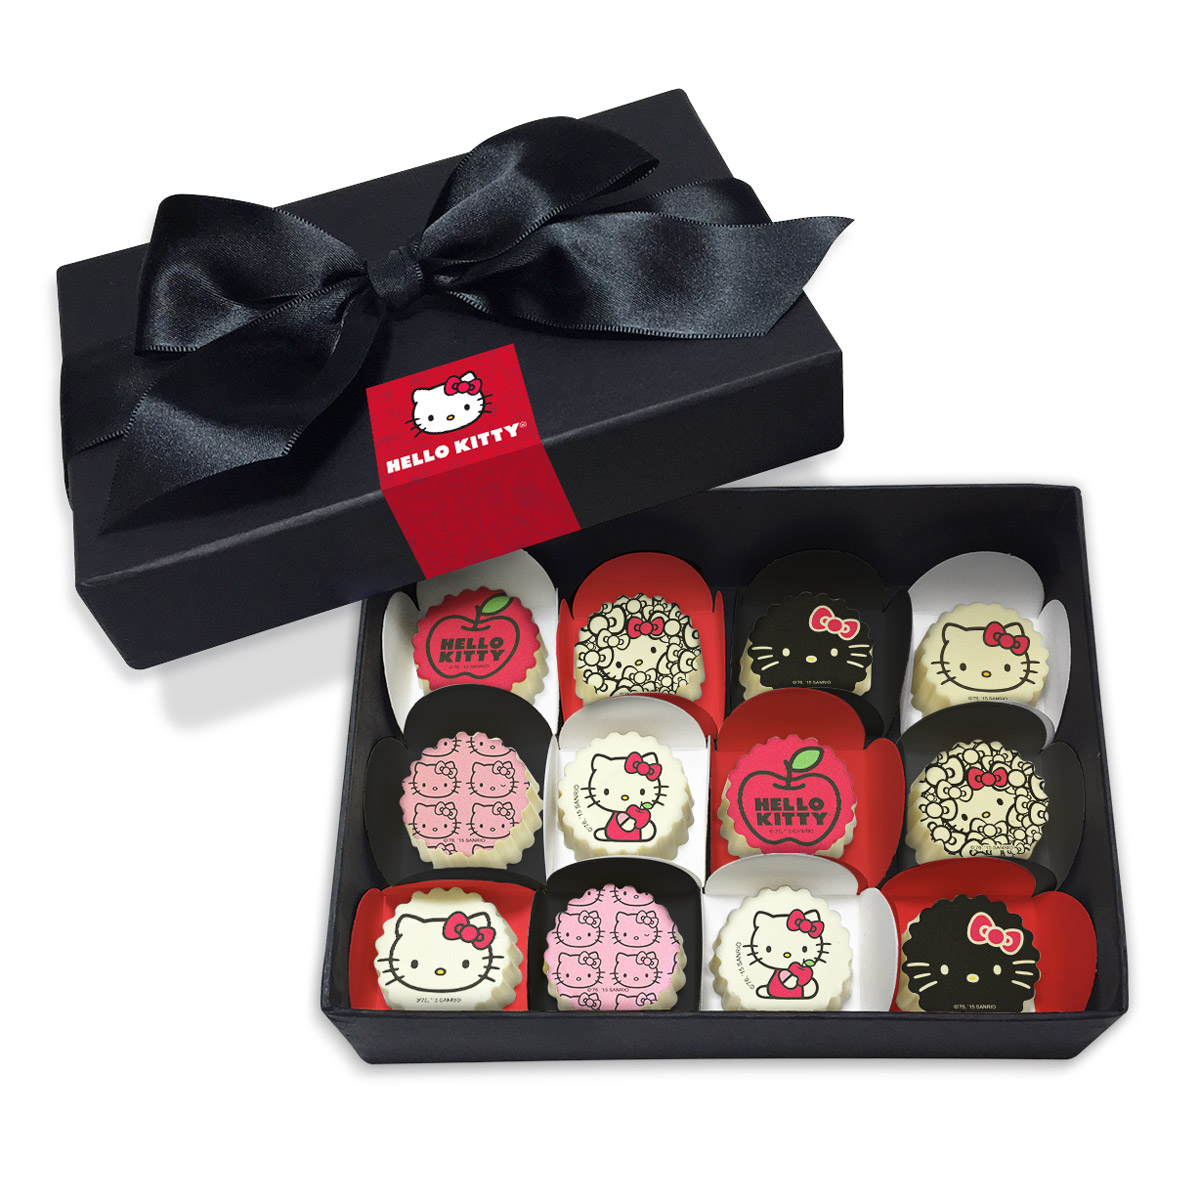 Caixa de Bombons Gourmet Hello Kitty Ribbons